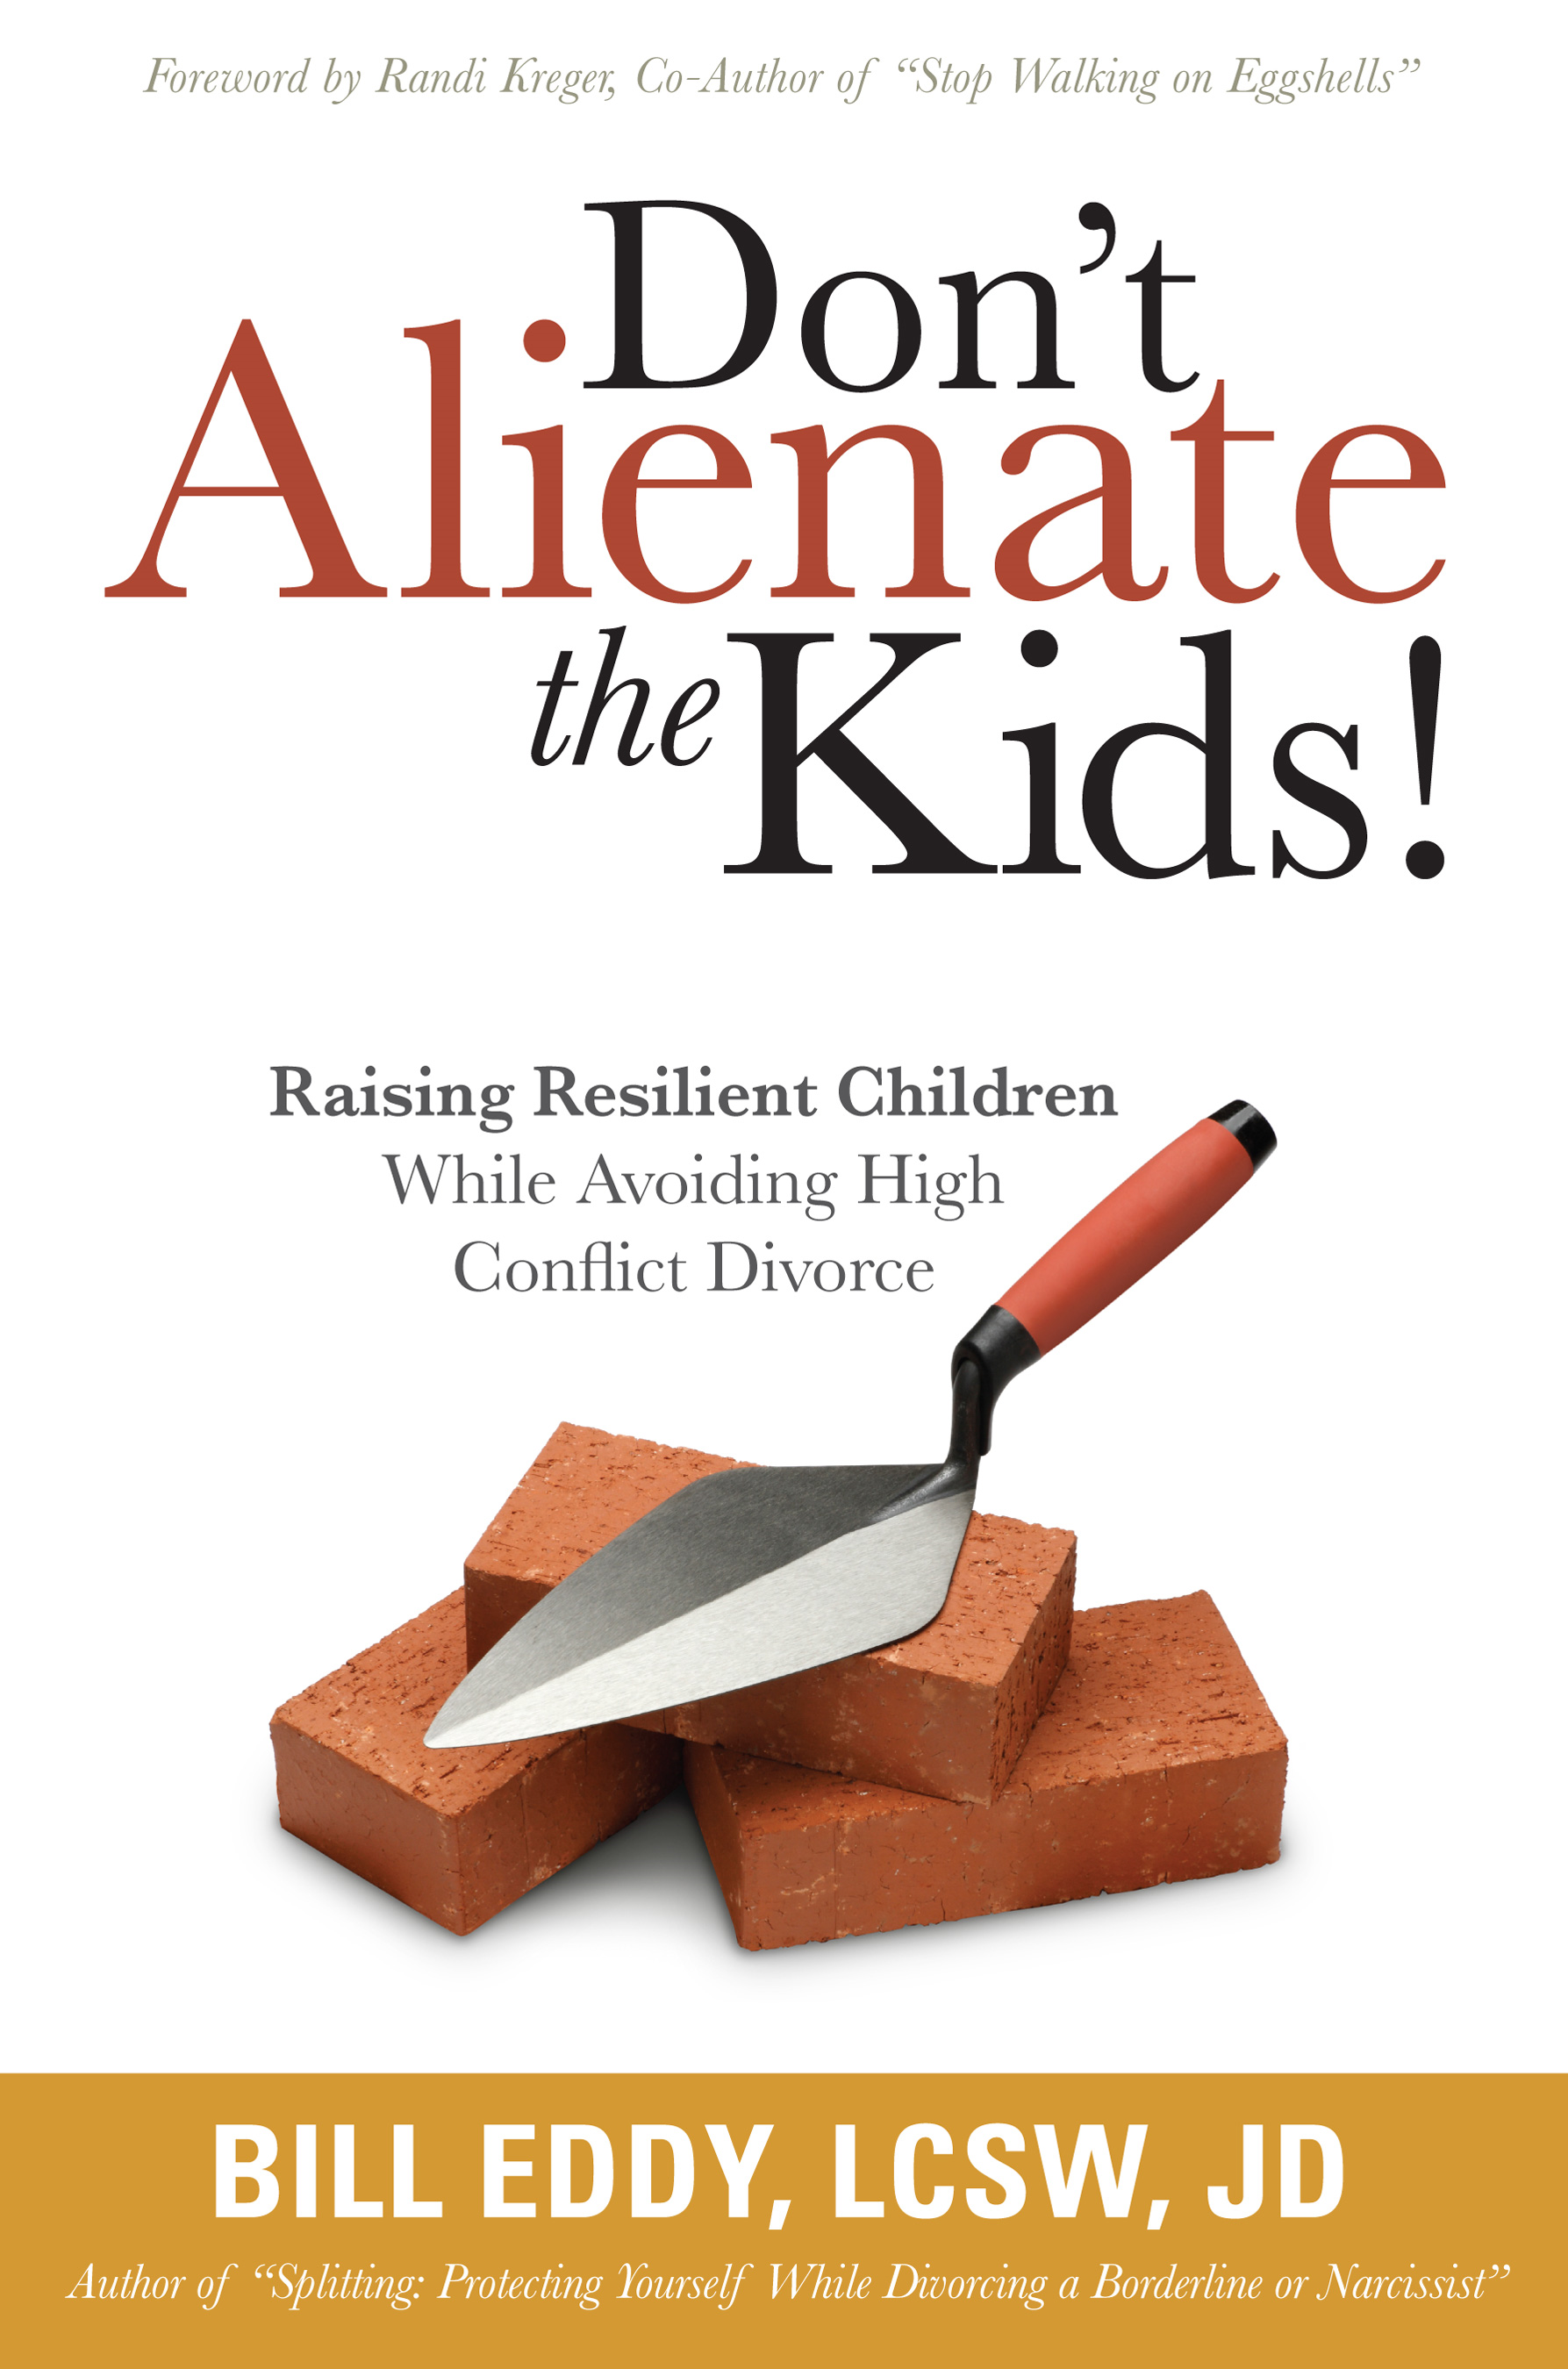 Don't Alienate the Kids!: Raising Resilient Children While Avoiding High Conflict Divorce